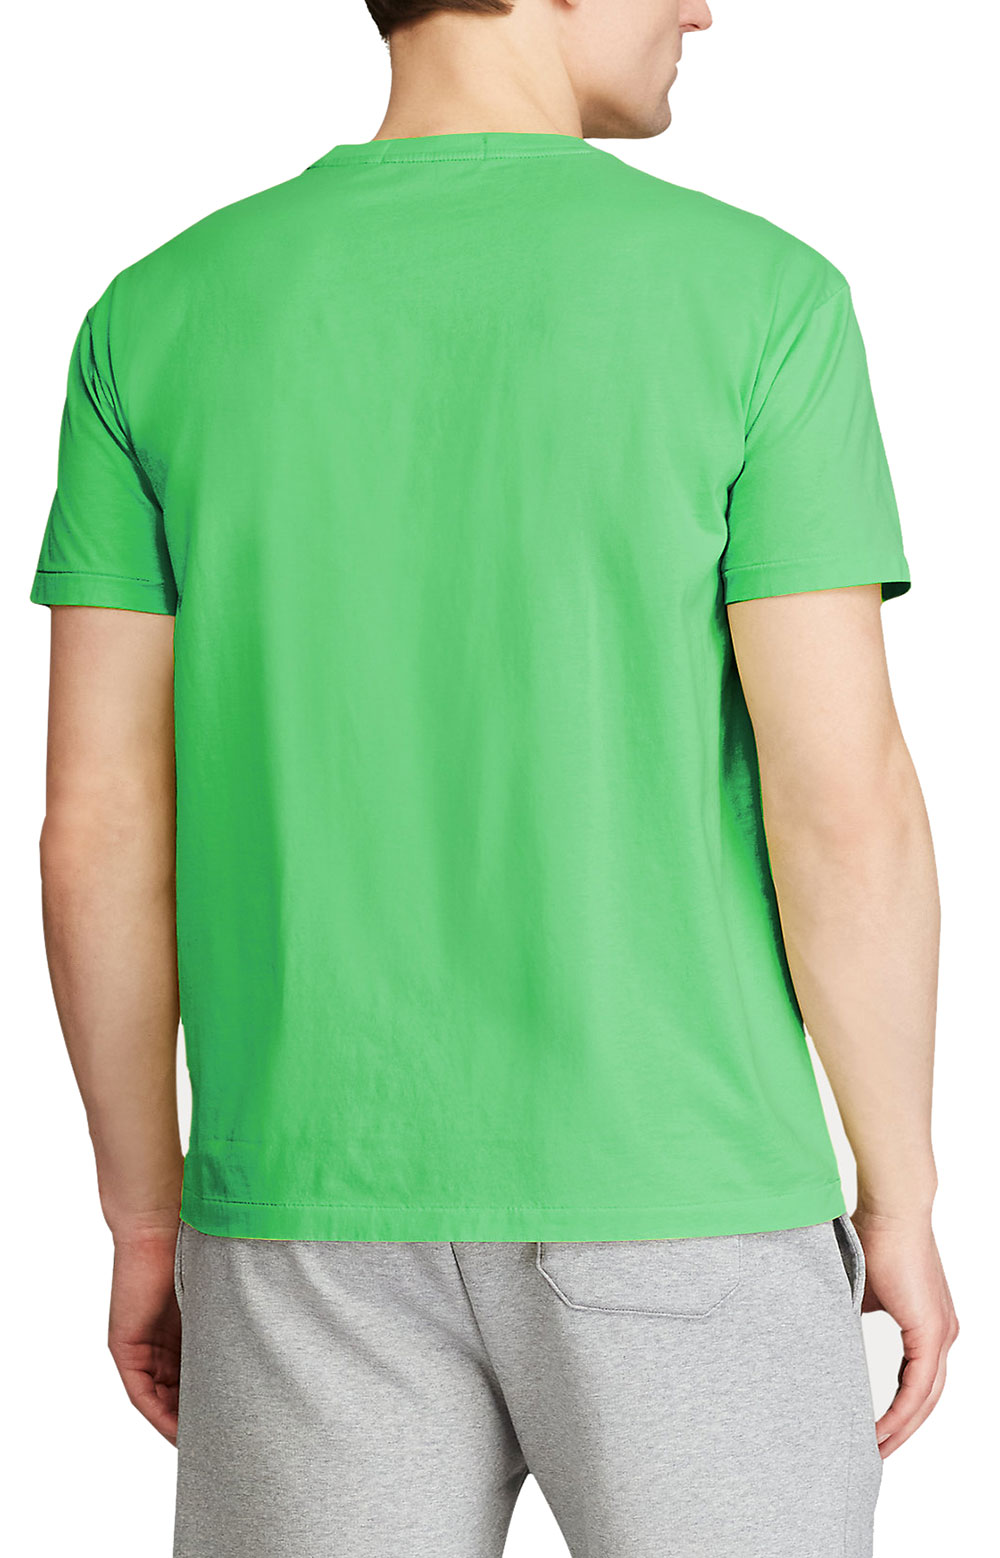 Classic Fit Polo Sport T-Shirt - Neon Green 2